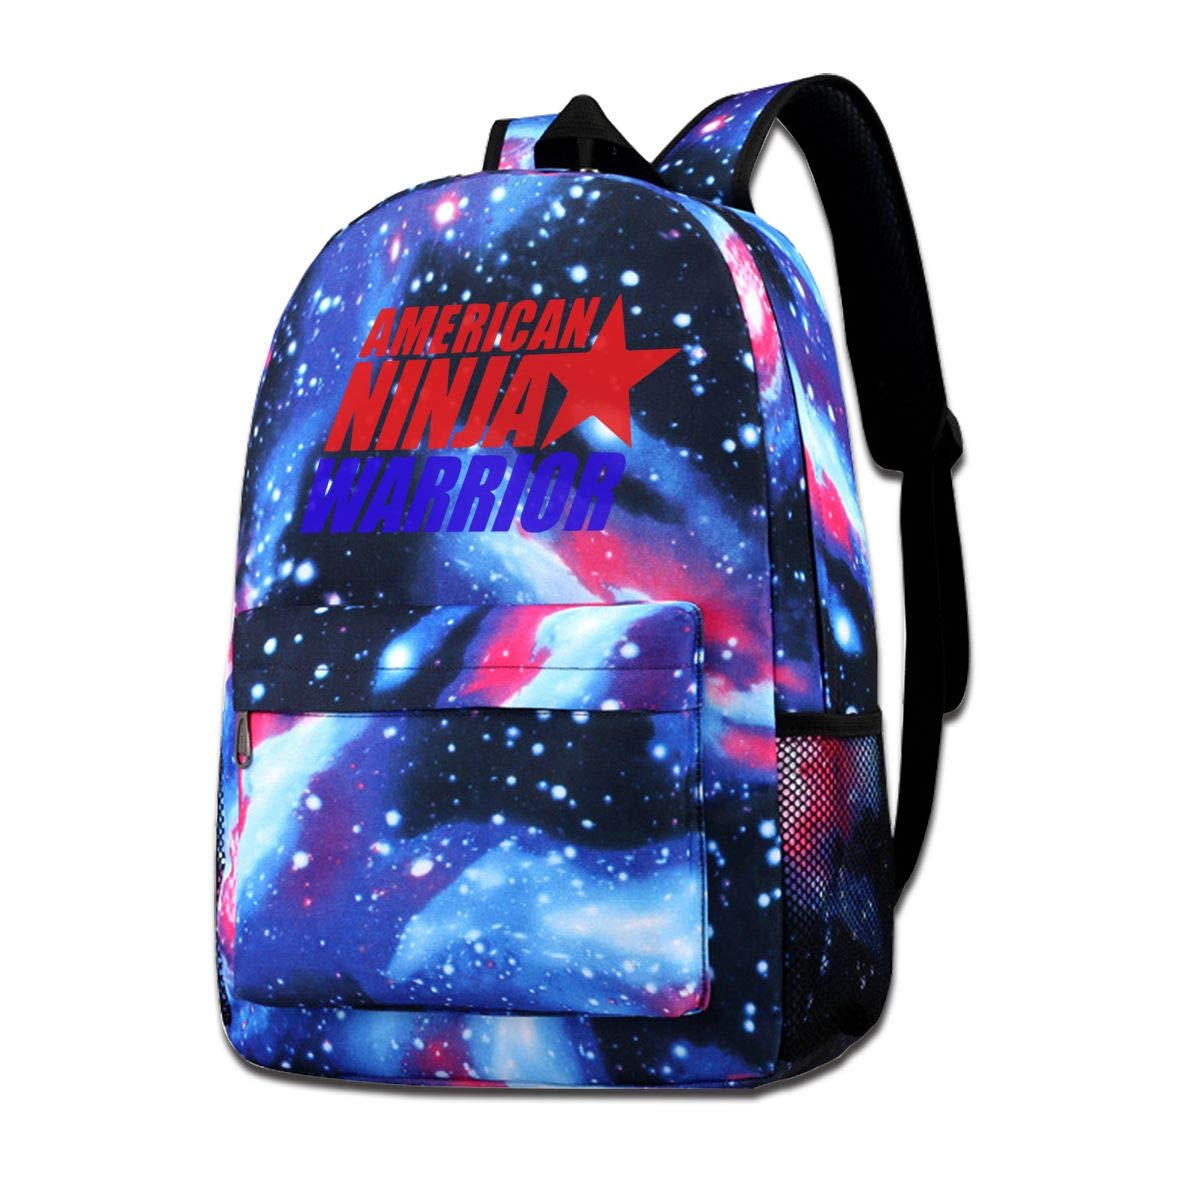 Amazon.com: American-Ninja Warrior Galaxy Shoulder Bag ...